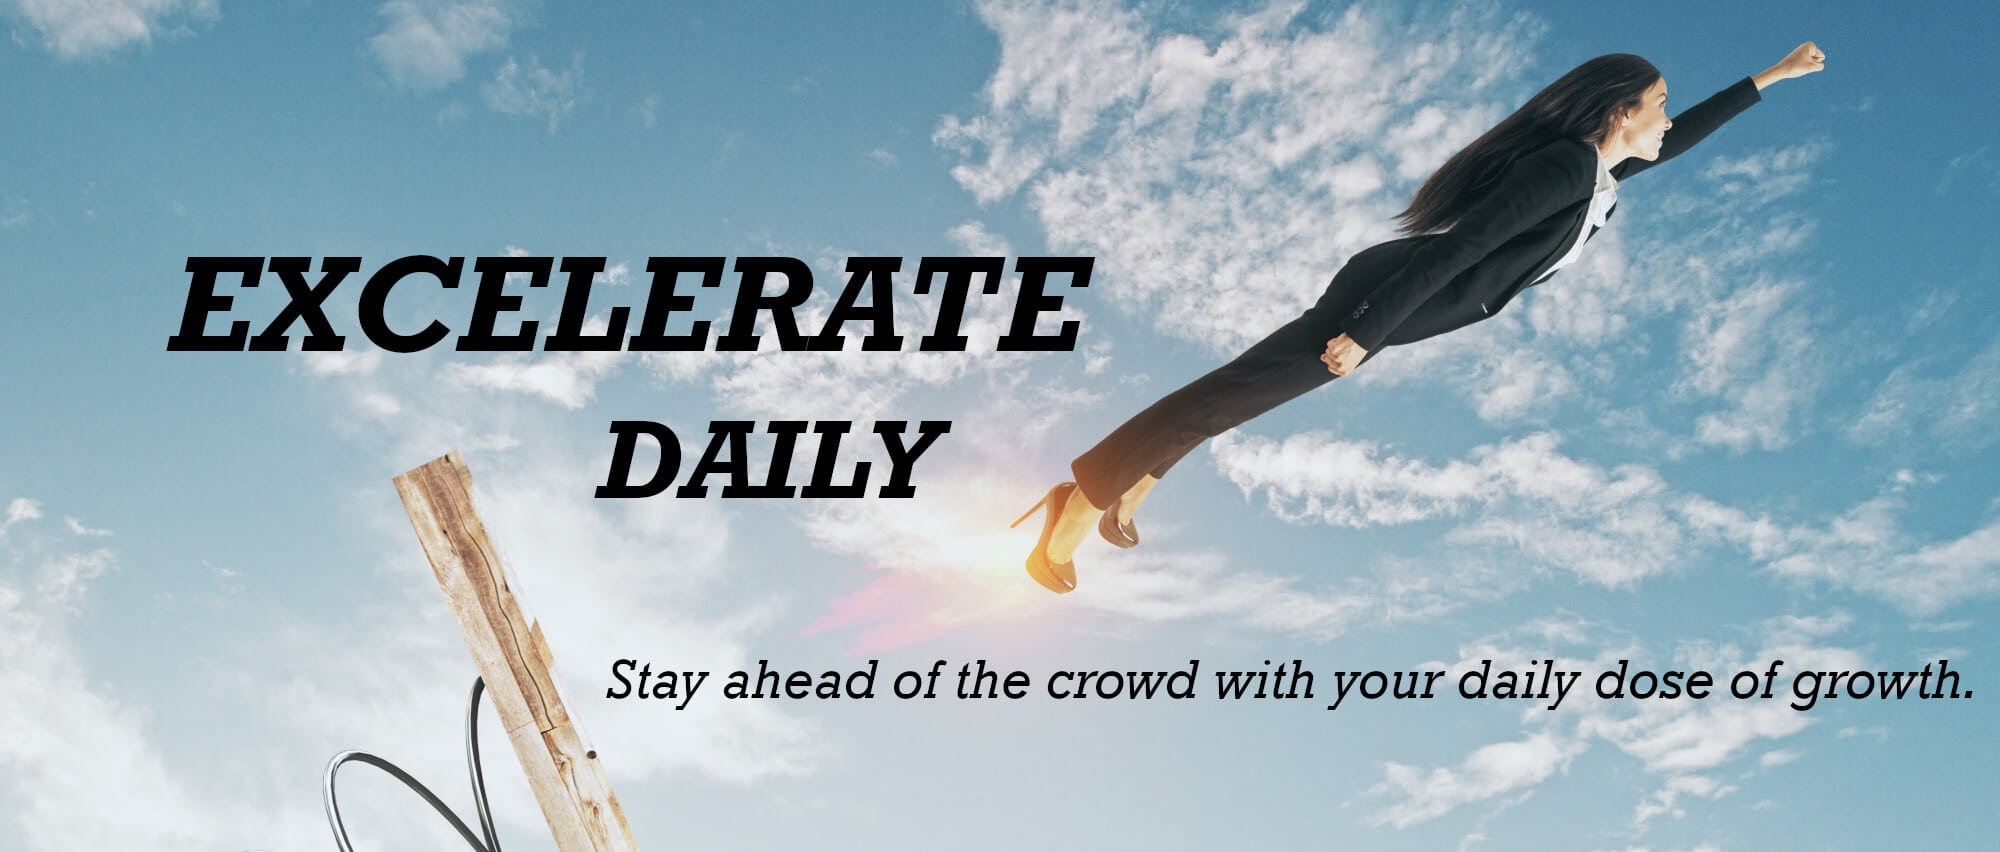 Excelerate Daily - Stay ahead of the crowd with your daily dose of growth